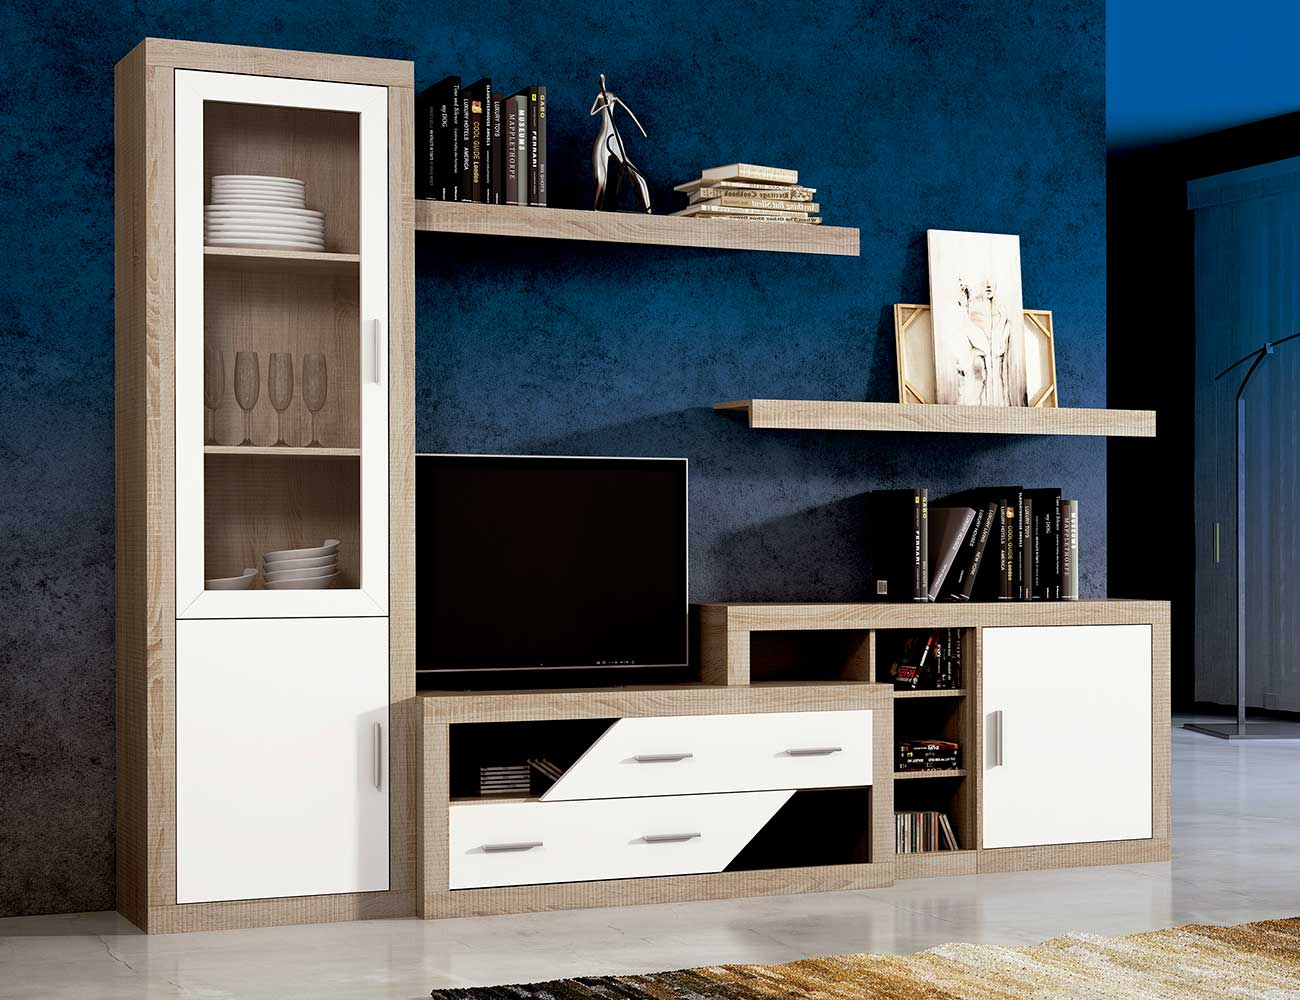 Mueble de sal n estilo moderno con bodeguero color for Mueble salon 180 cm